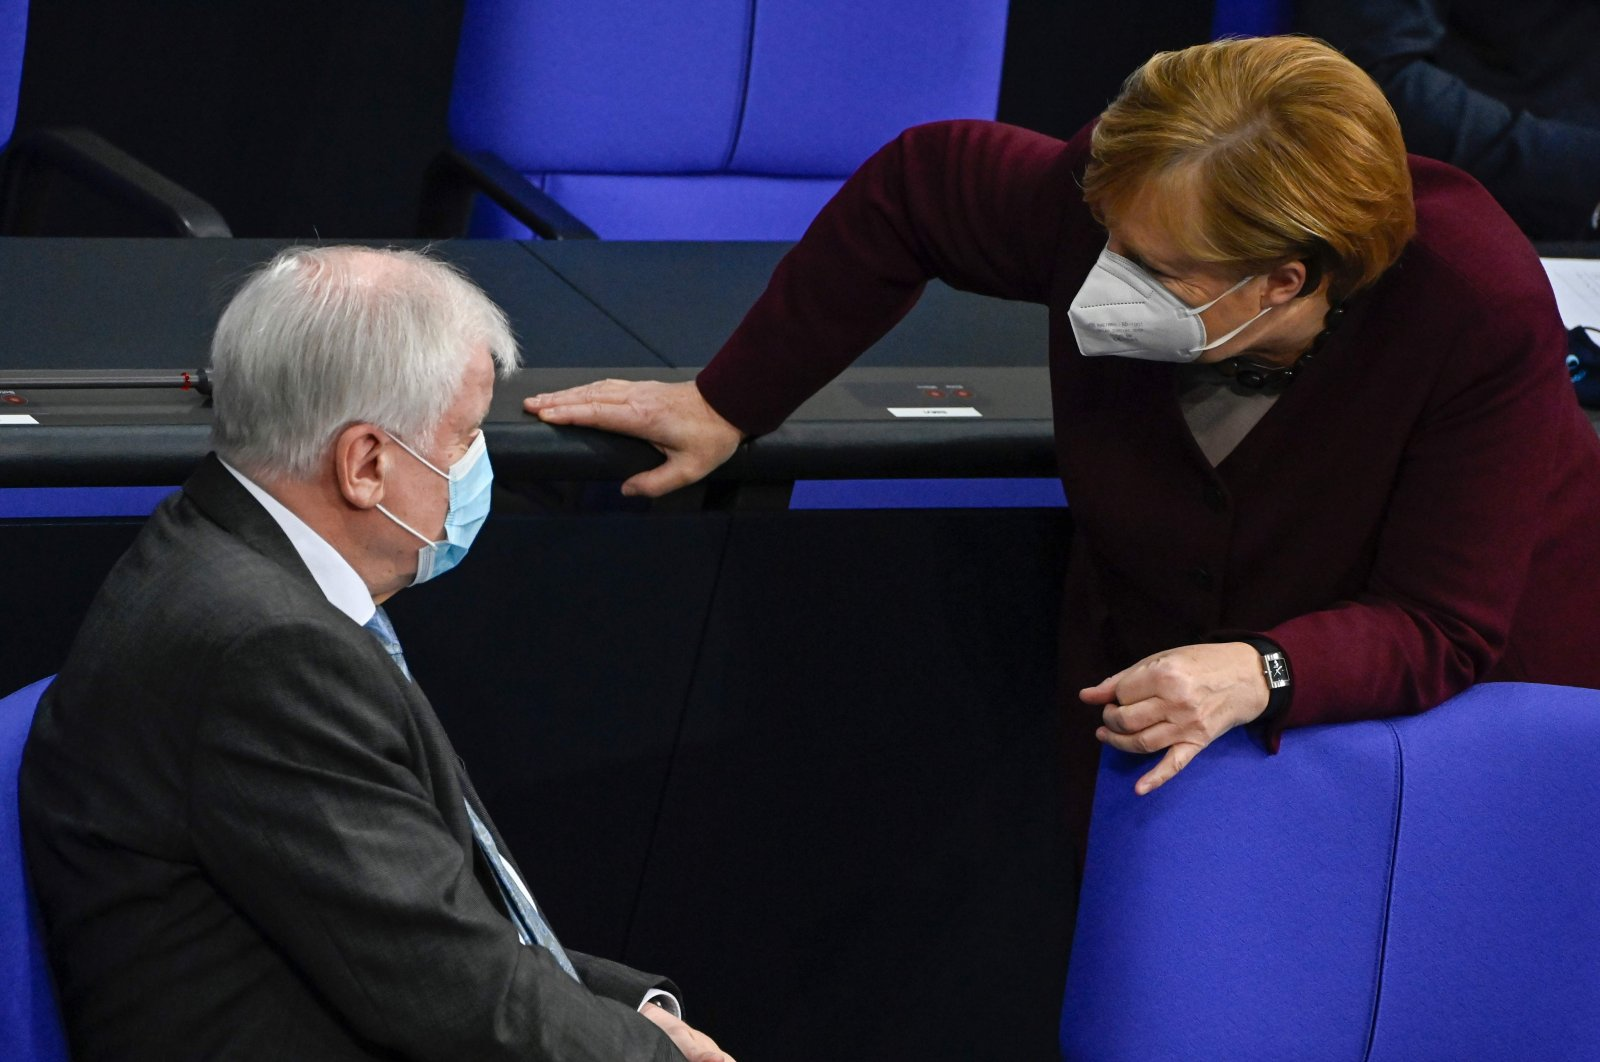 German Chancellor Angela Merkel and German Interior Minister Horst Seehofer wear face masks as they talk during a session at the Bundestag, Berlin, Germany, Nov. 26, 2020. (AFP Photo)